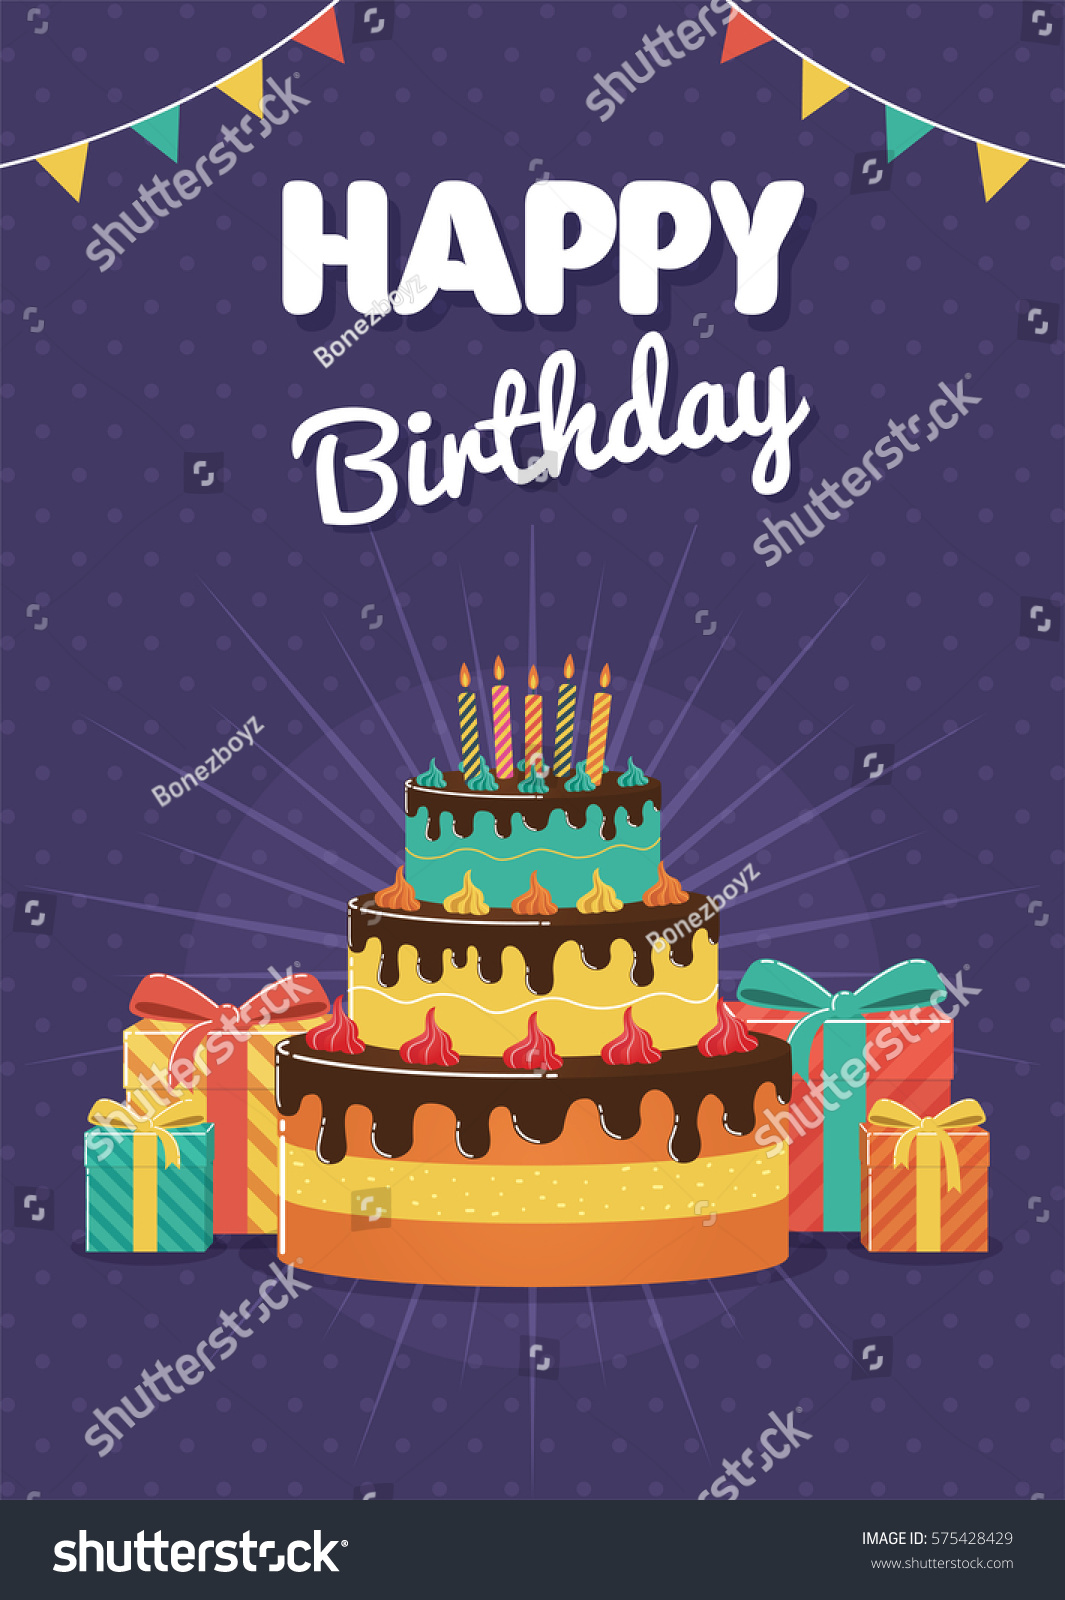 Birthday Greeting Invitation Card Birthday Cake Stock Vector